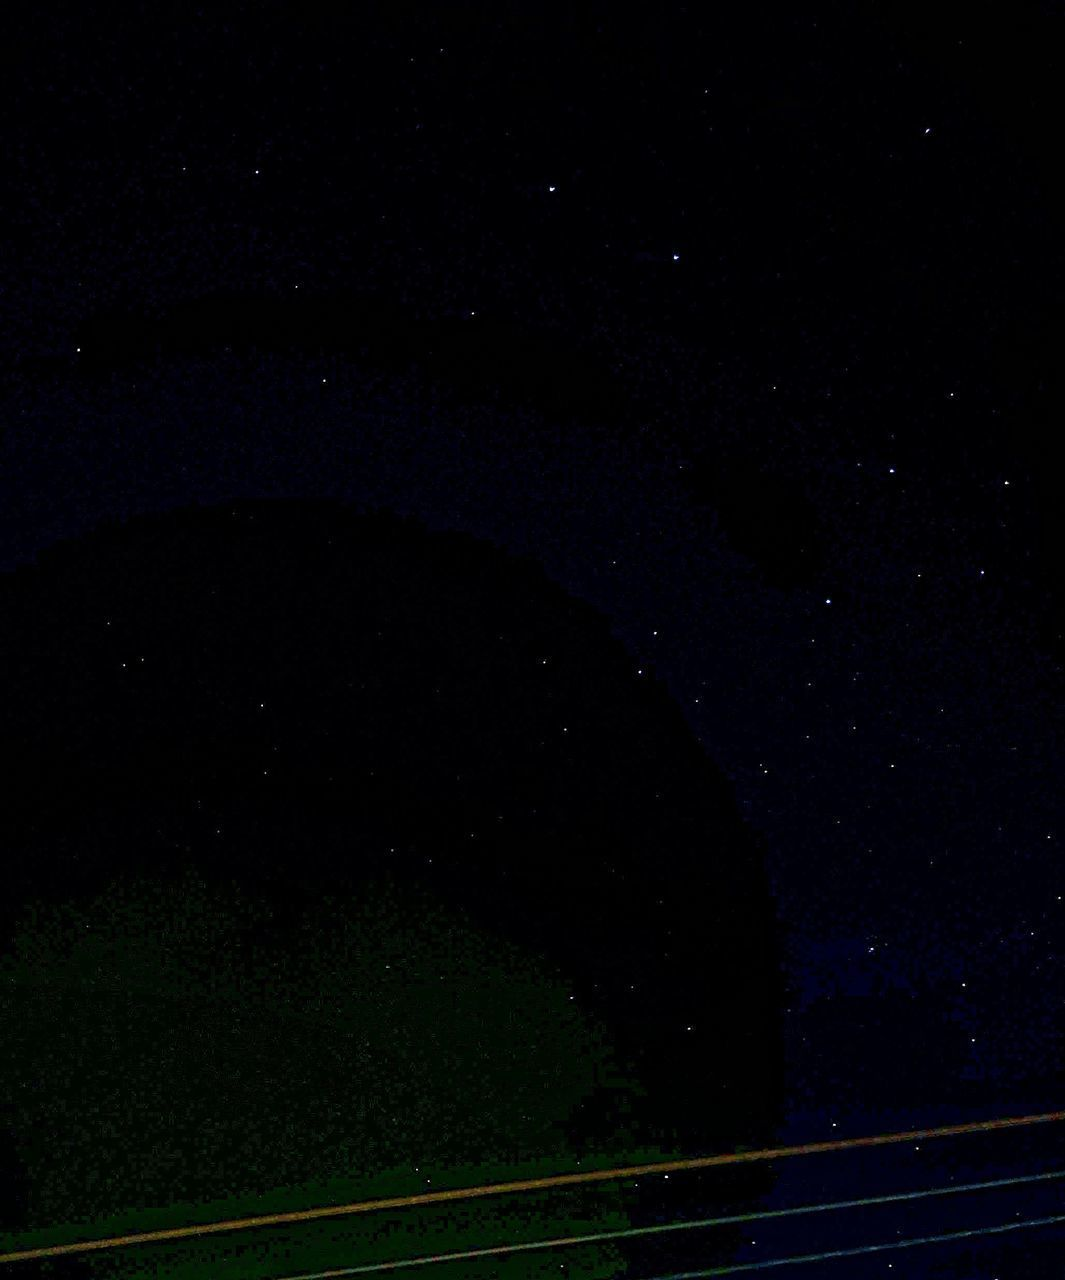 night, star - space, astronomy, no people, sky, outdoors, nature, road, space, scenics, moon, starry, beauty in nature, galaxy